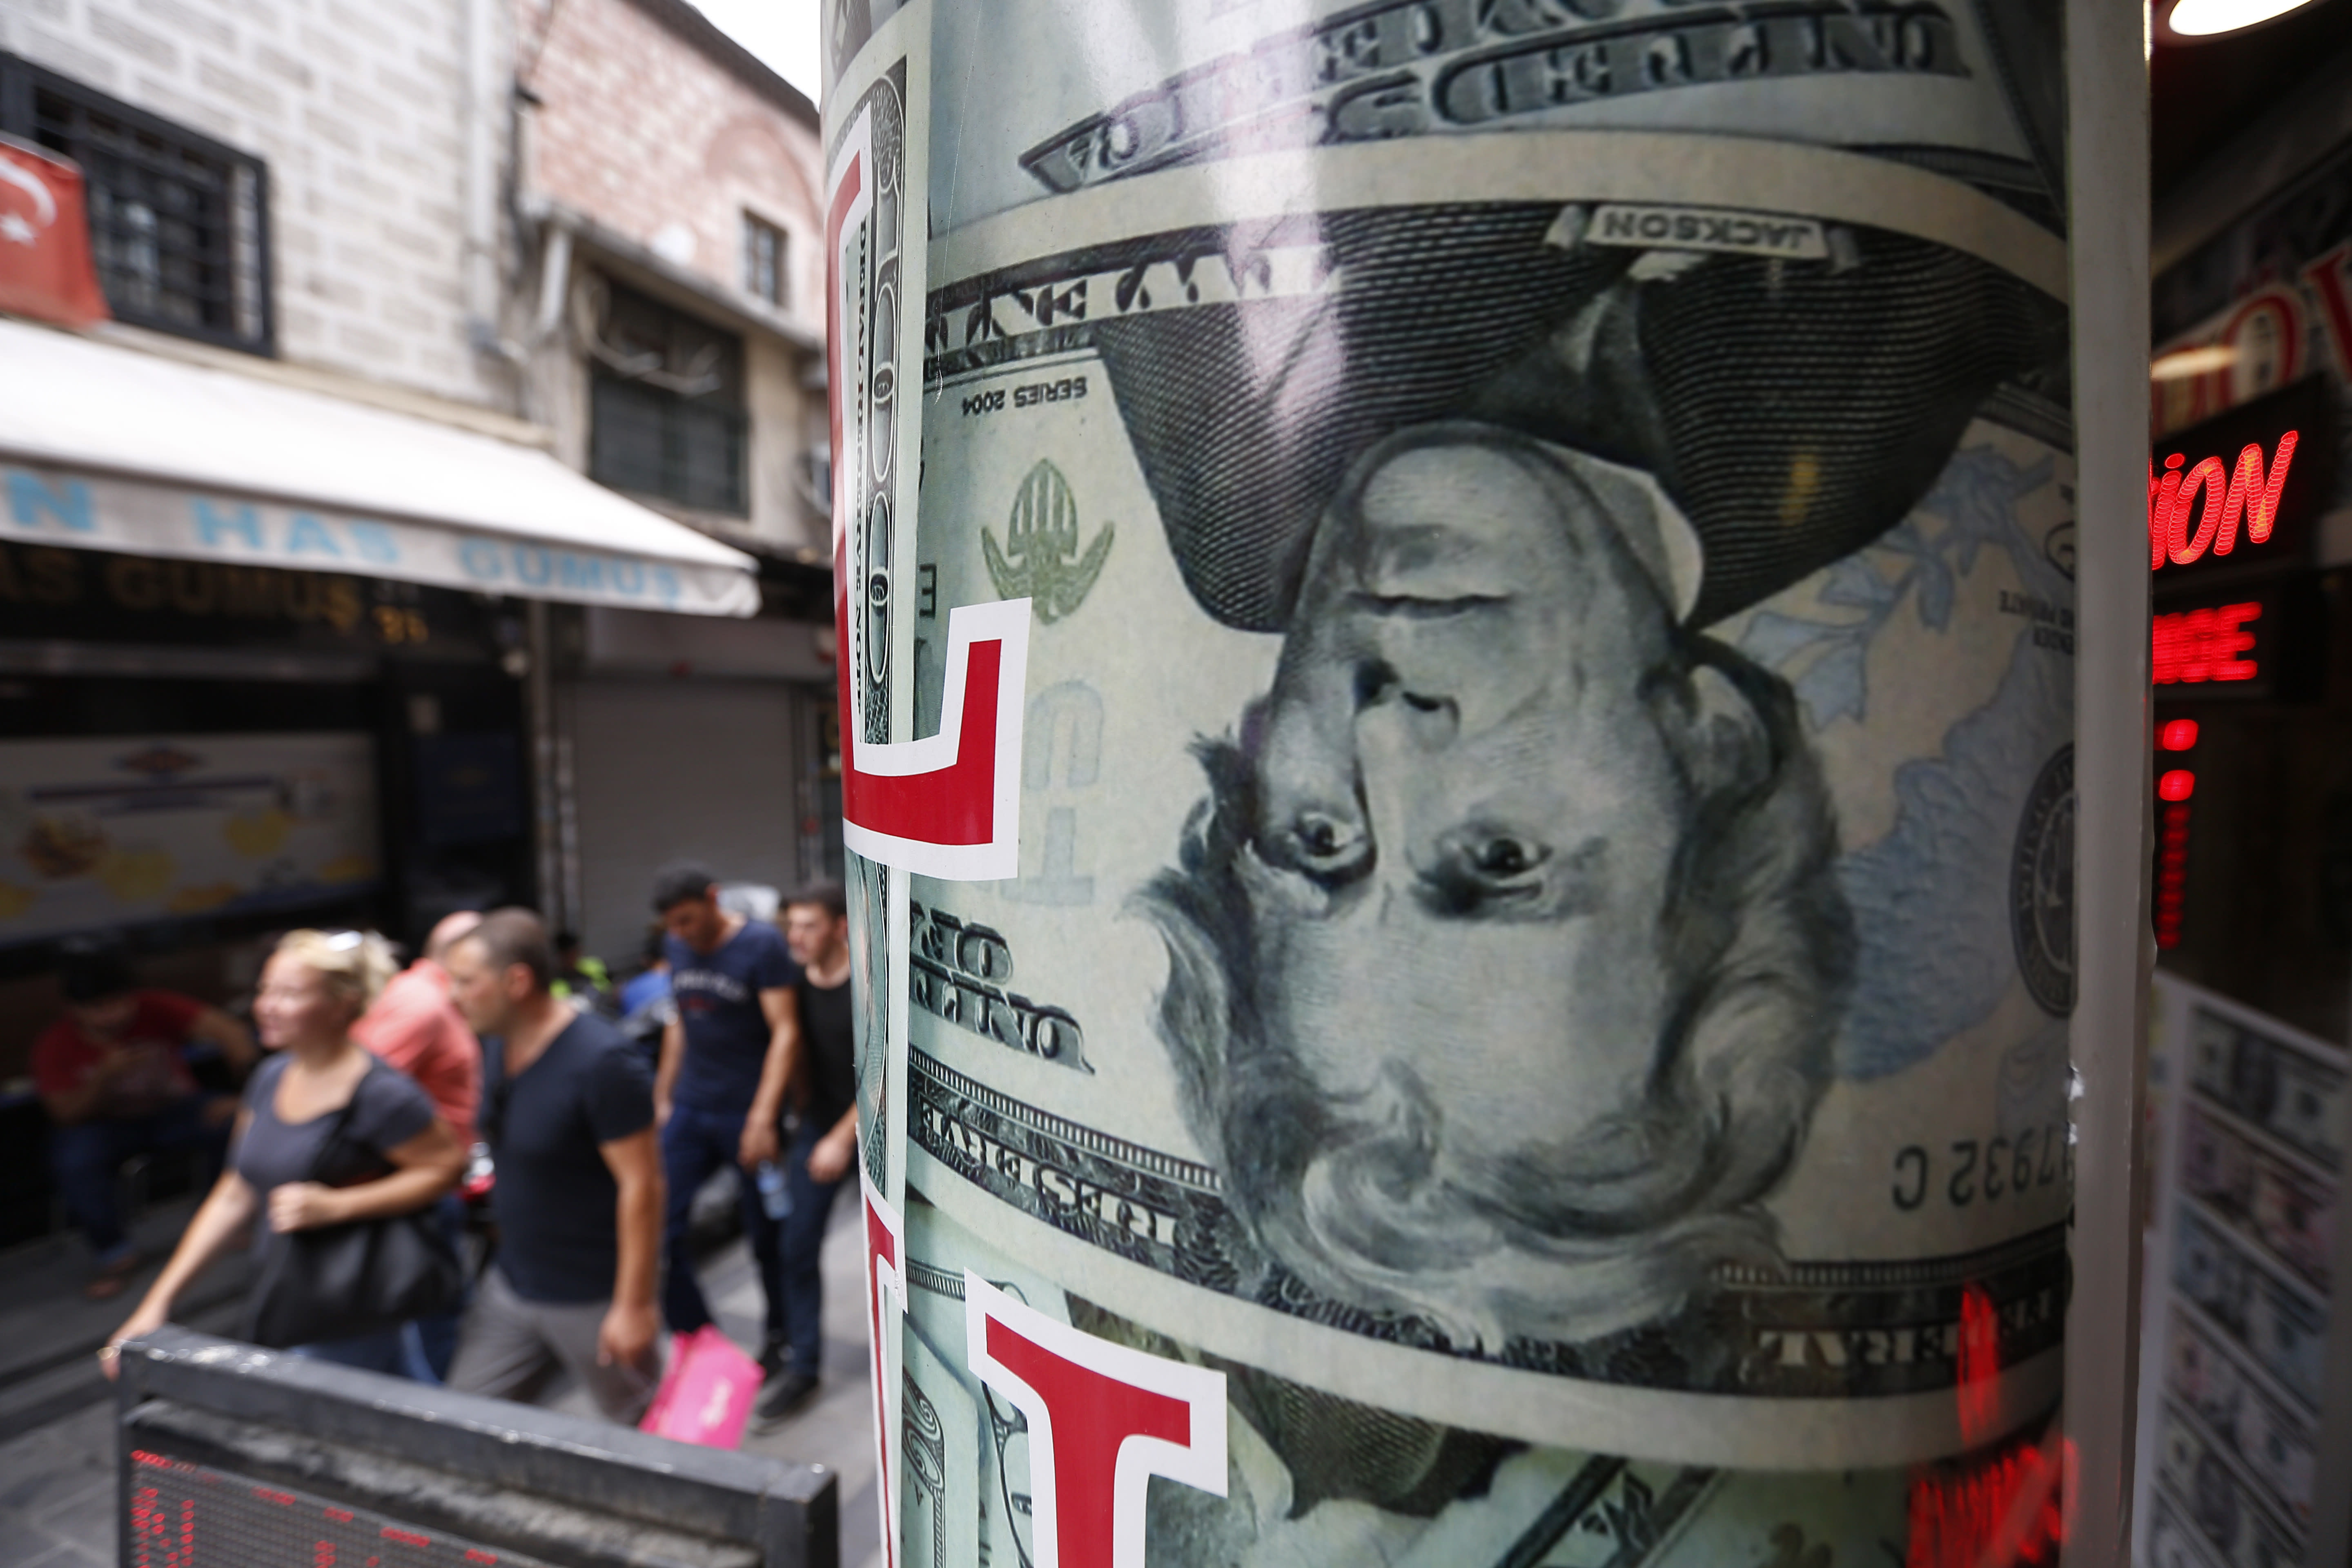 People walk past a currency exchange shop in Istanbul, Friday, Aug. 17, 2018. Turkey's lira currency fell once again, as Turkey and the United States exchanged new threats of sanctions Friday, keeping alive a diplomatic and financial crisis. (AP Photo/Lefteris Pitarakis)